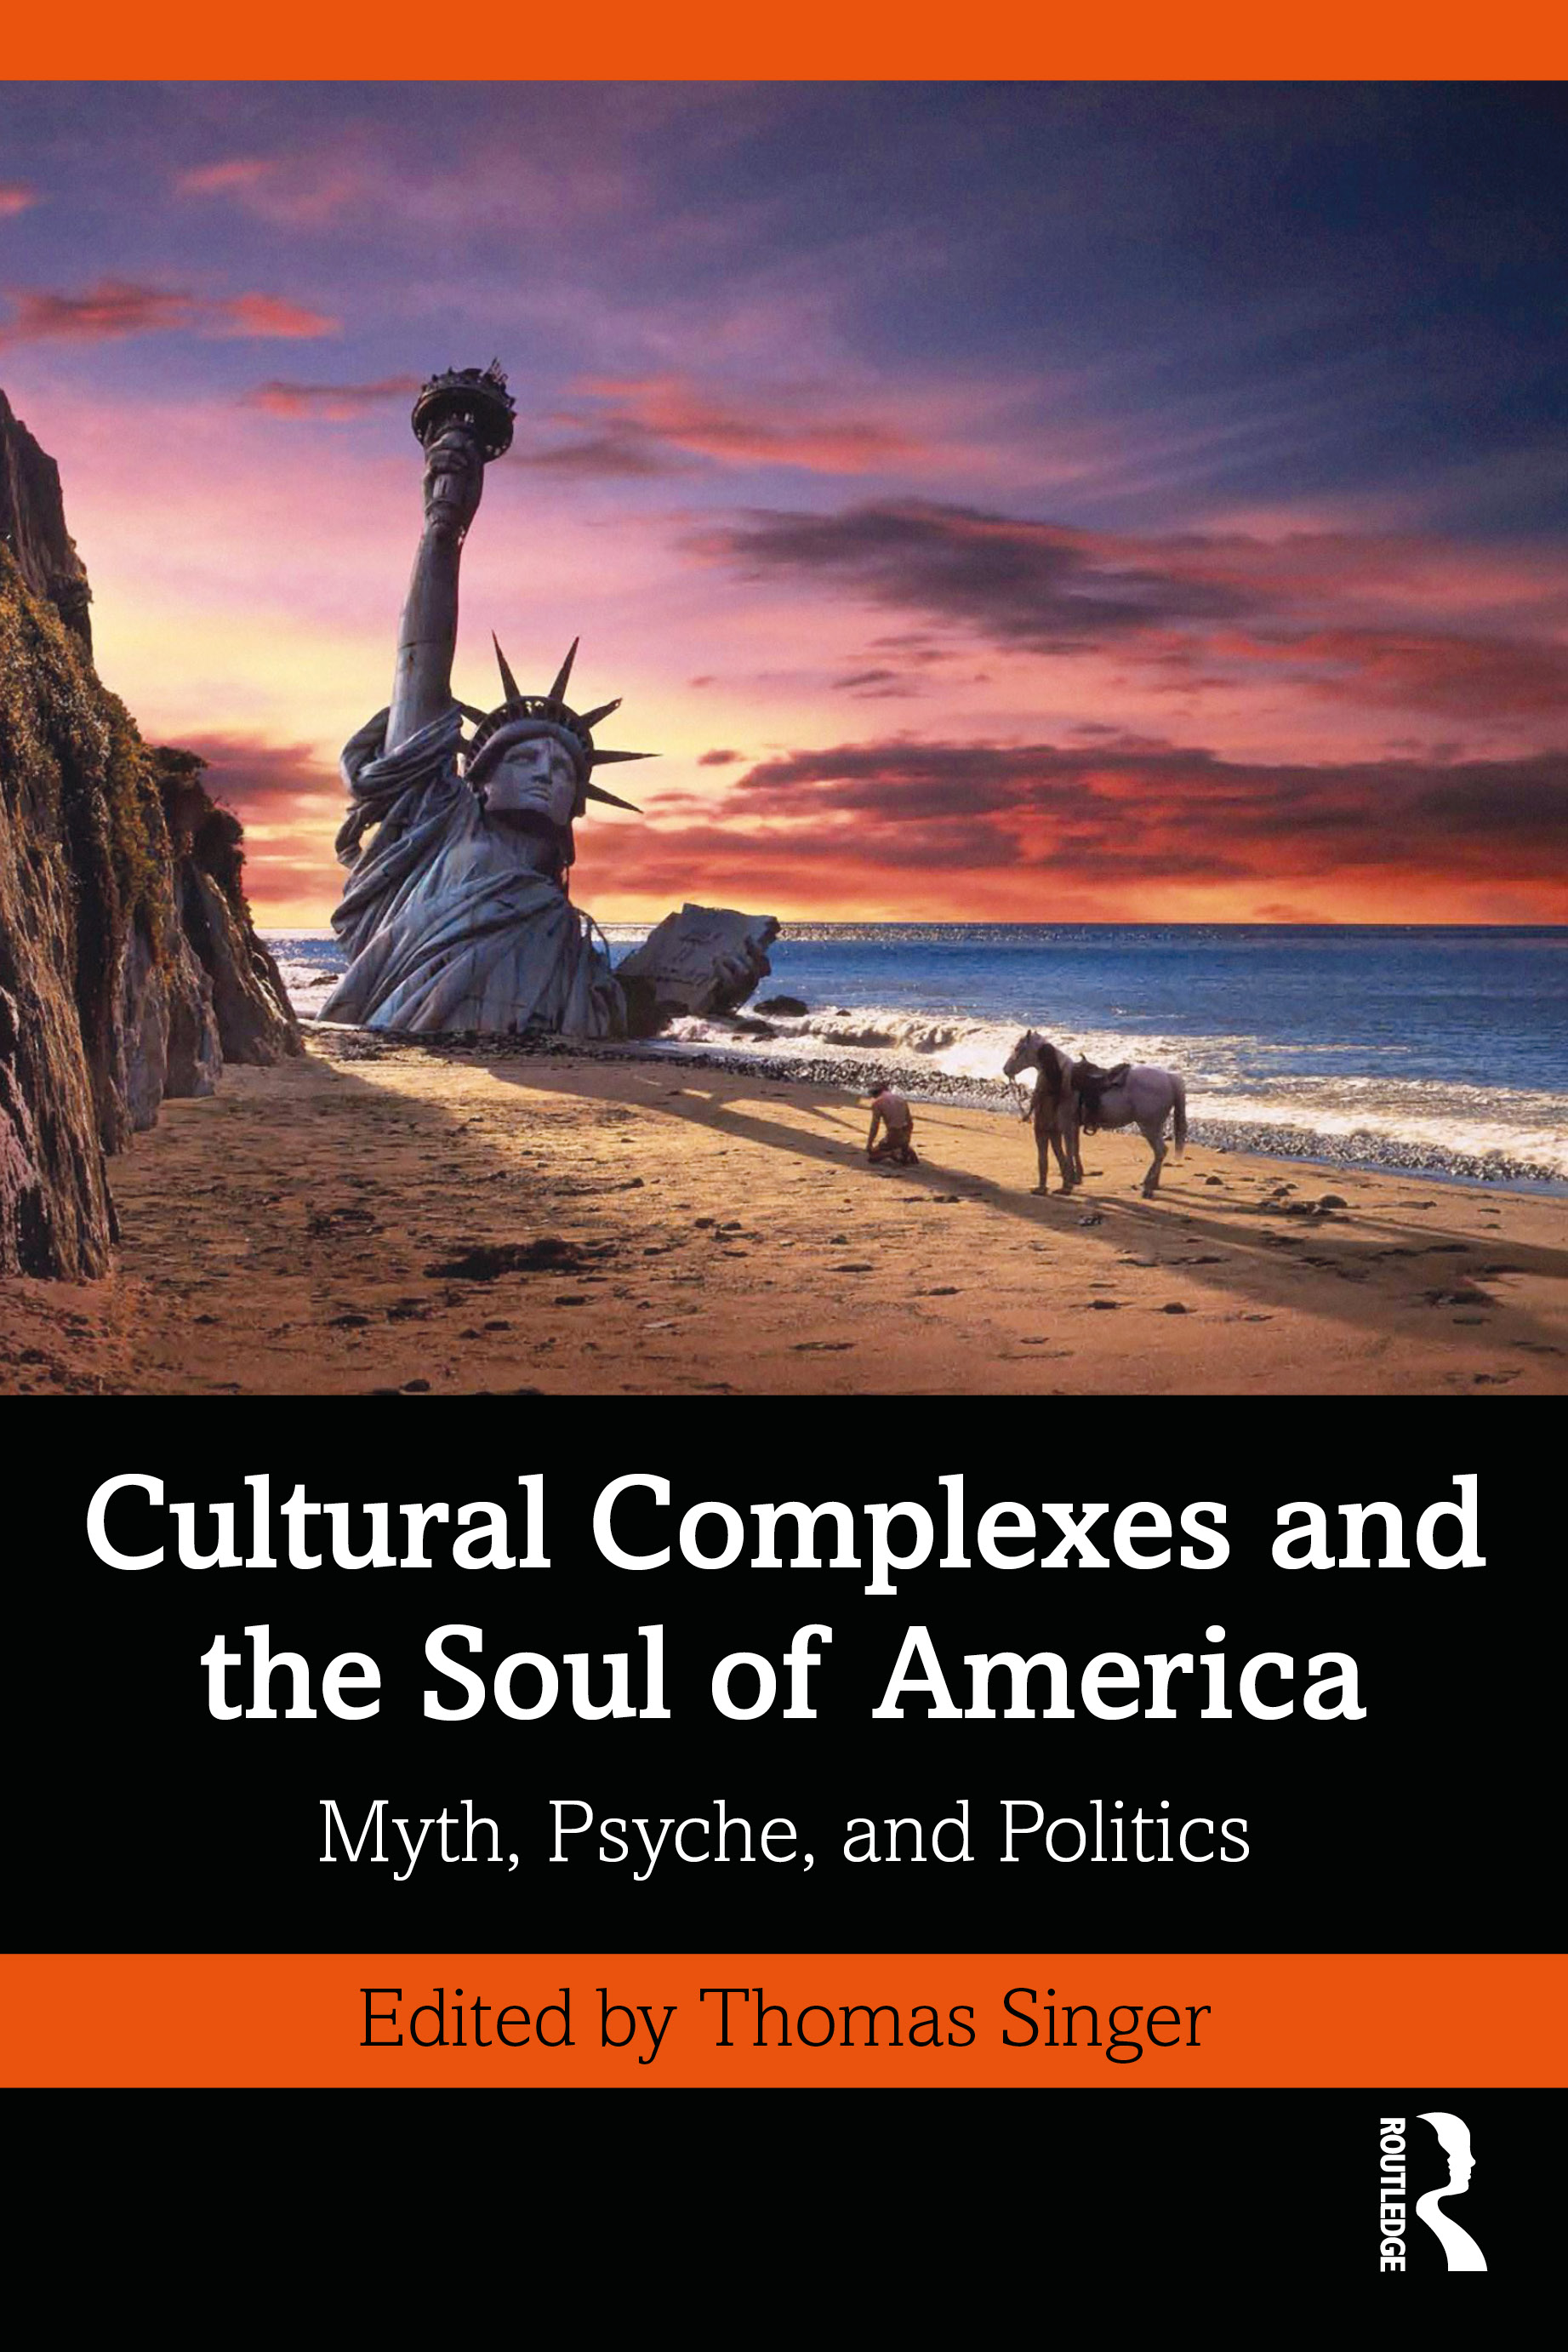 Cultural Complexes and the Soul of America: Myth, Psyche, and Politics book cover